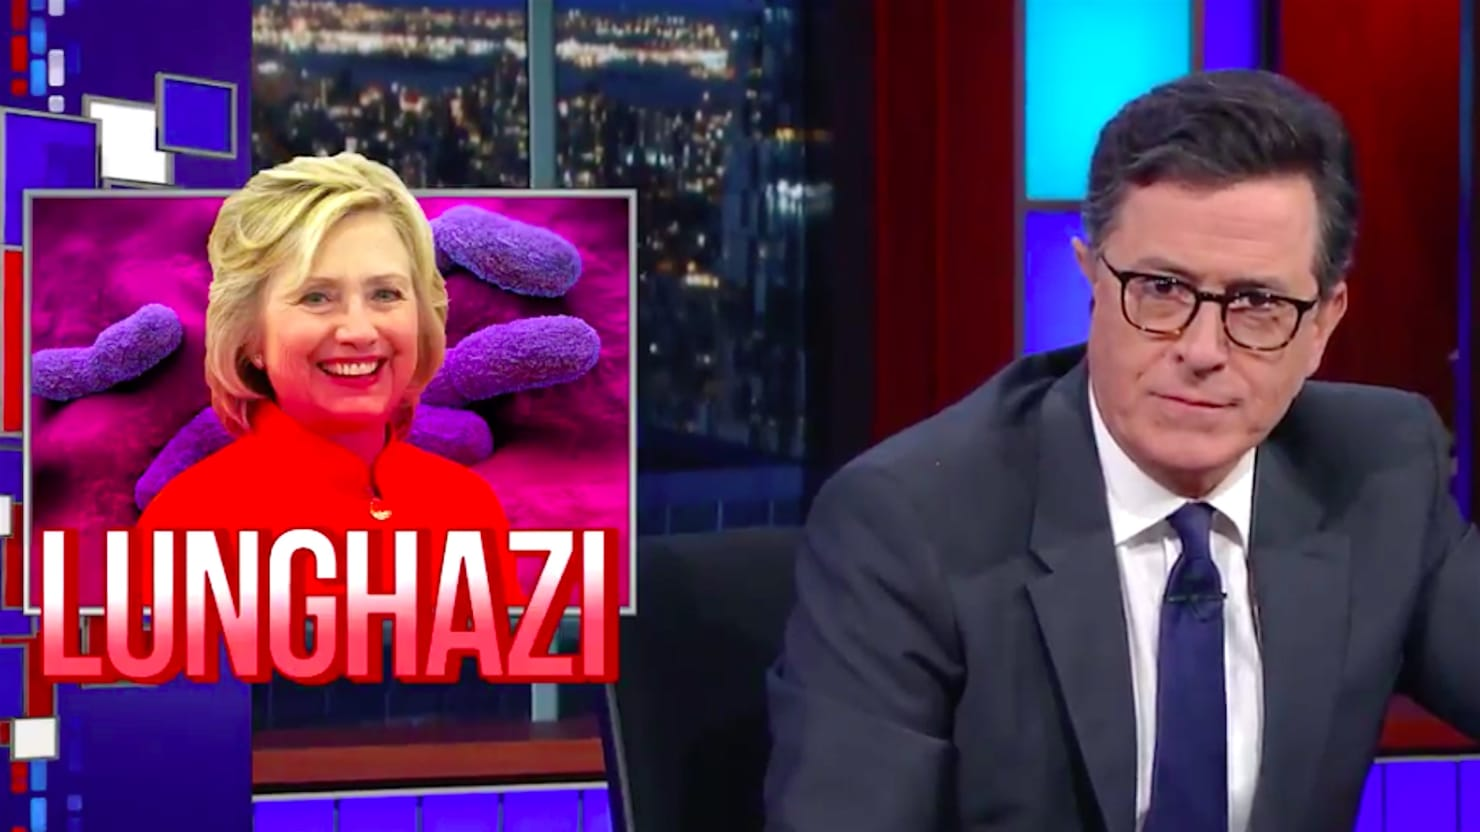 Stephen Colbert Takes on Hillary Clinton's Pneumonia: 'Even Her Immune System Turned Against Her'